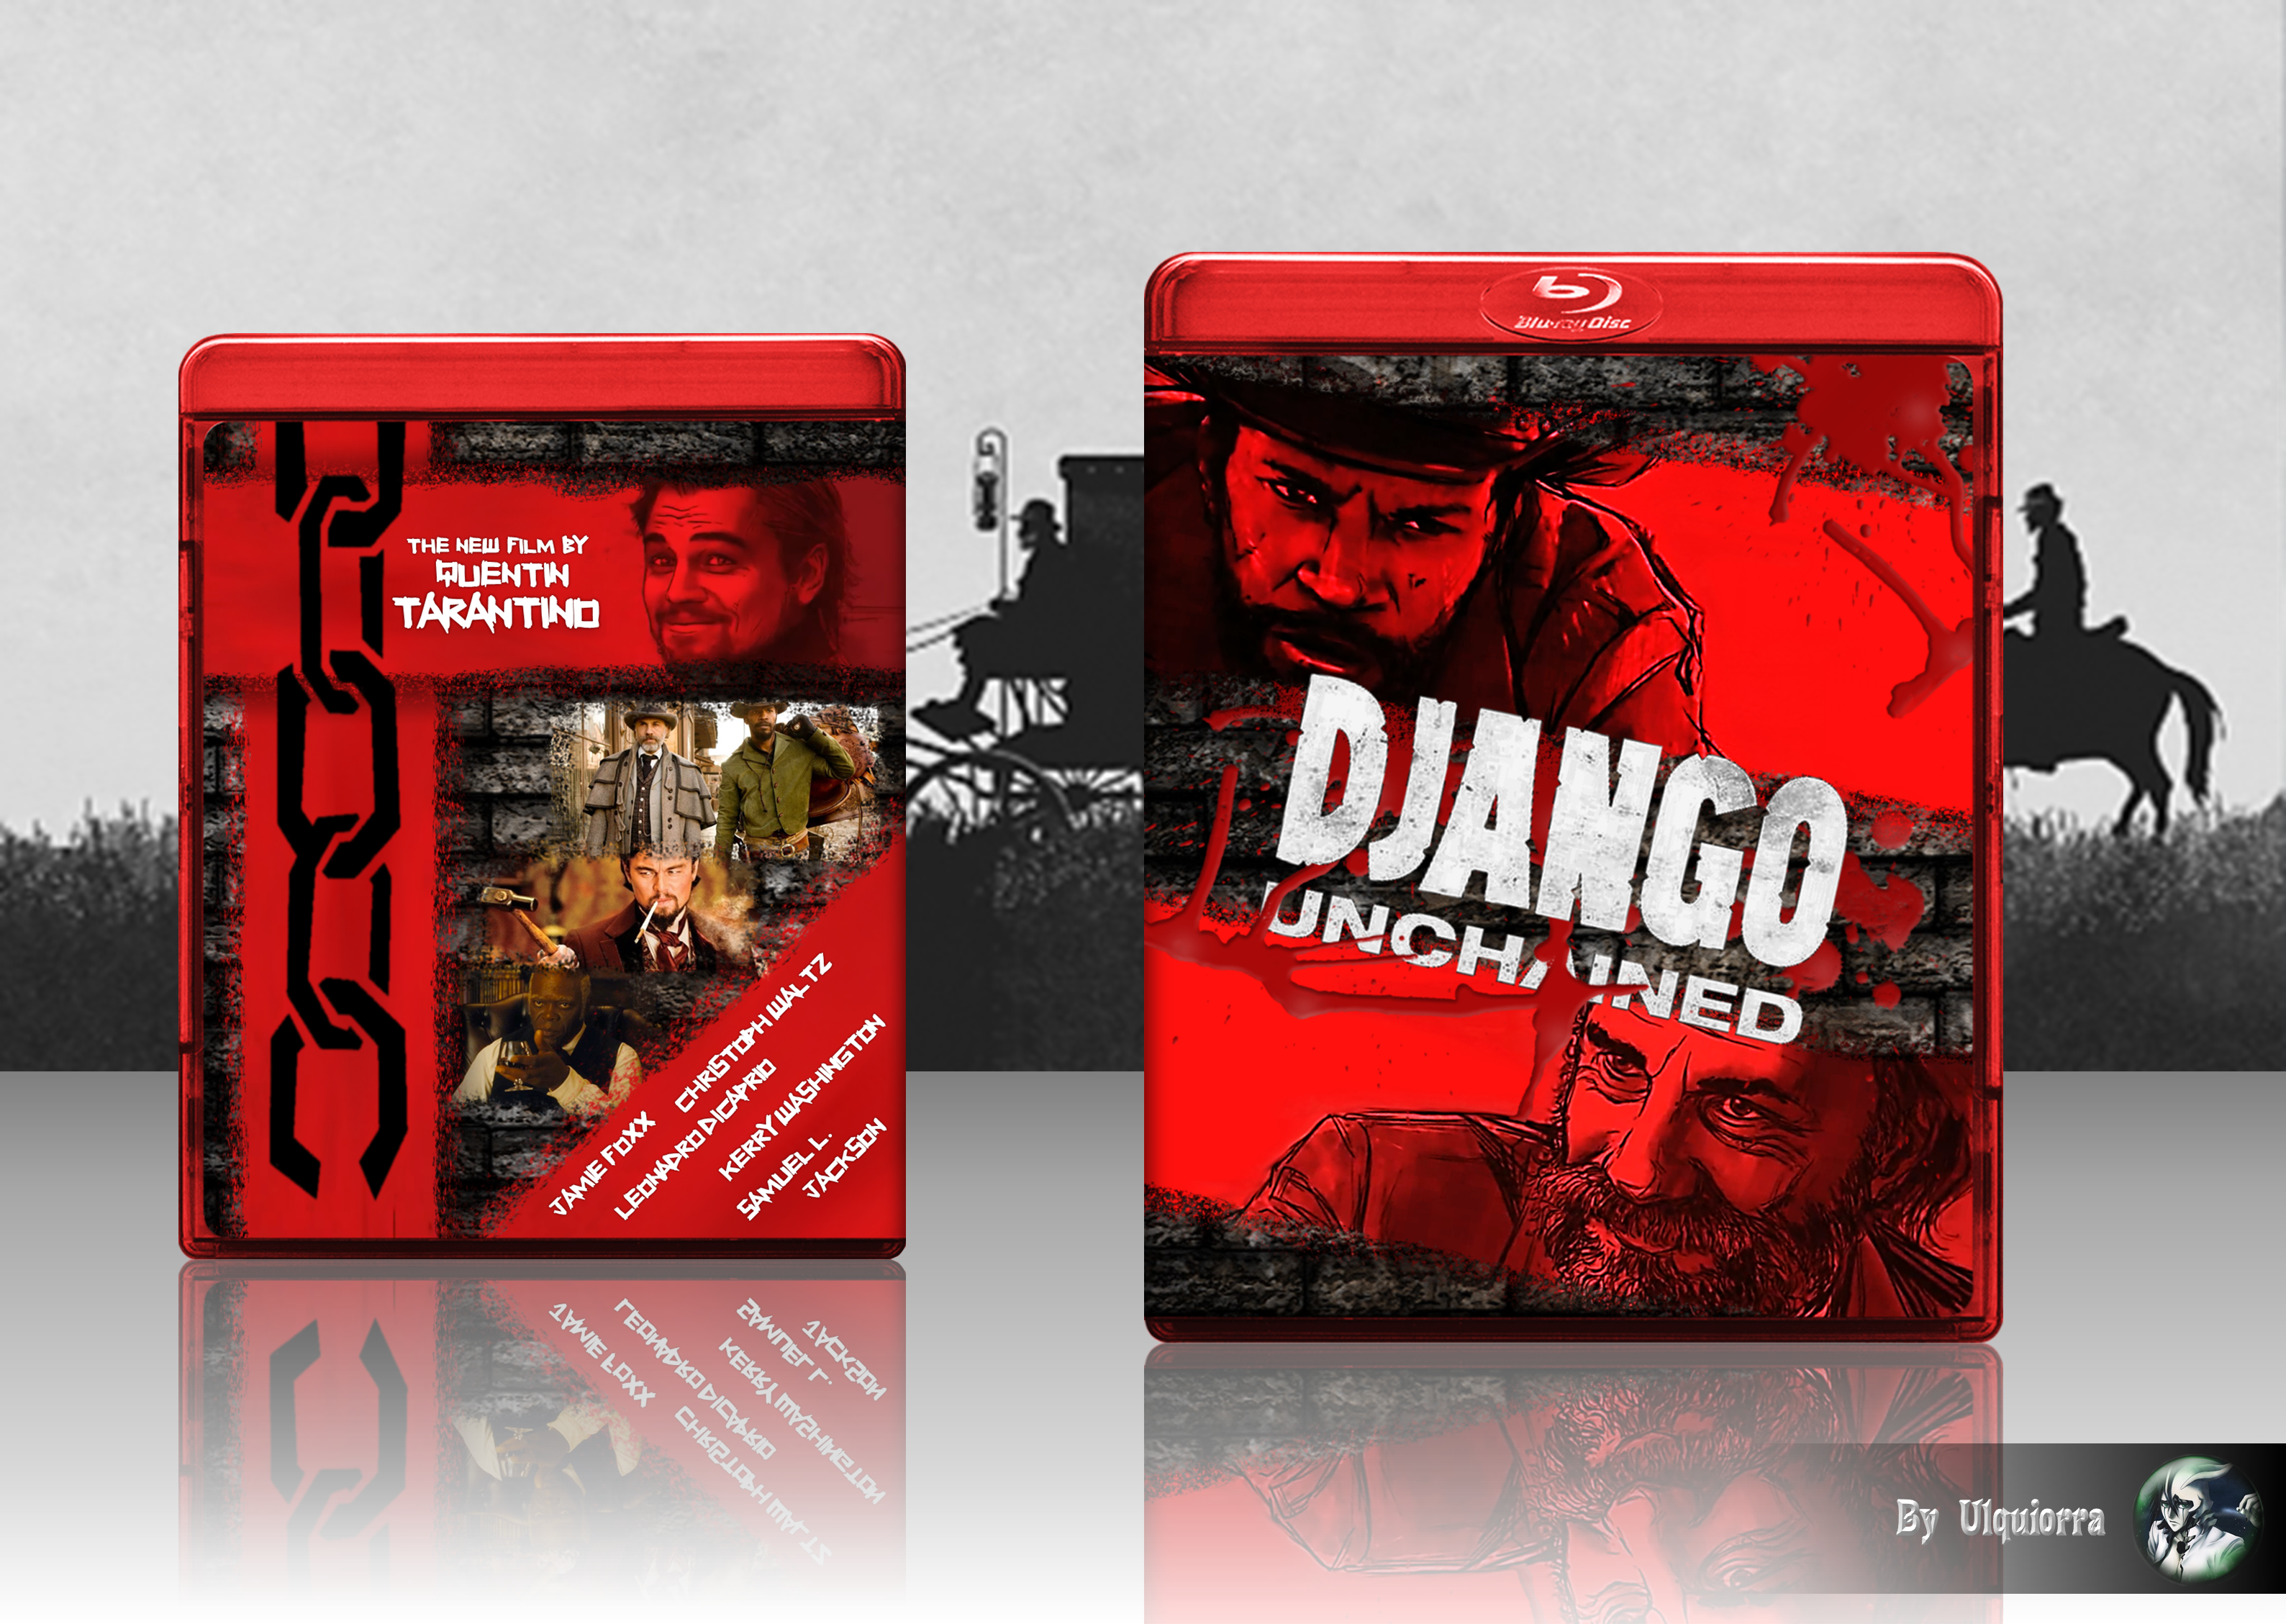 Django Unchained box cover